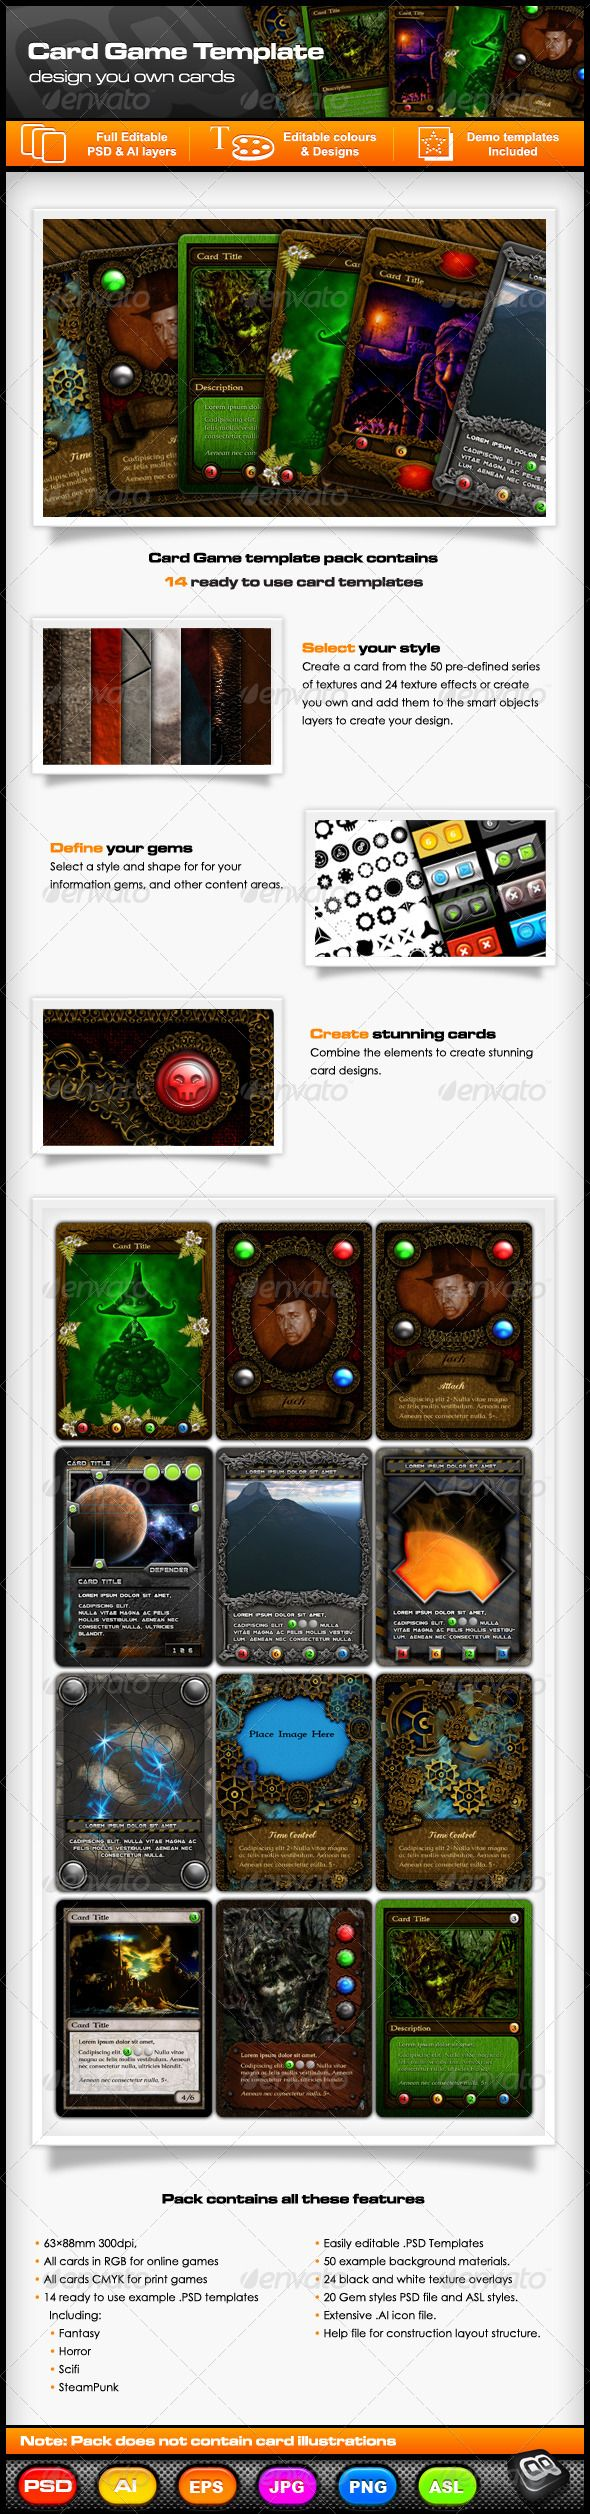 Collectable Card Game Template Pack Fun Card Games Collectible Card Games Card Games